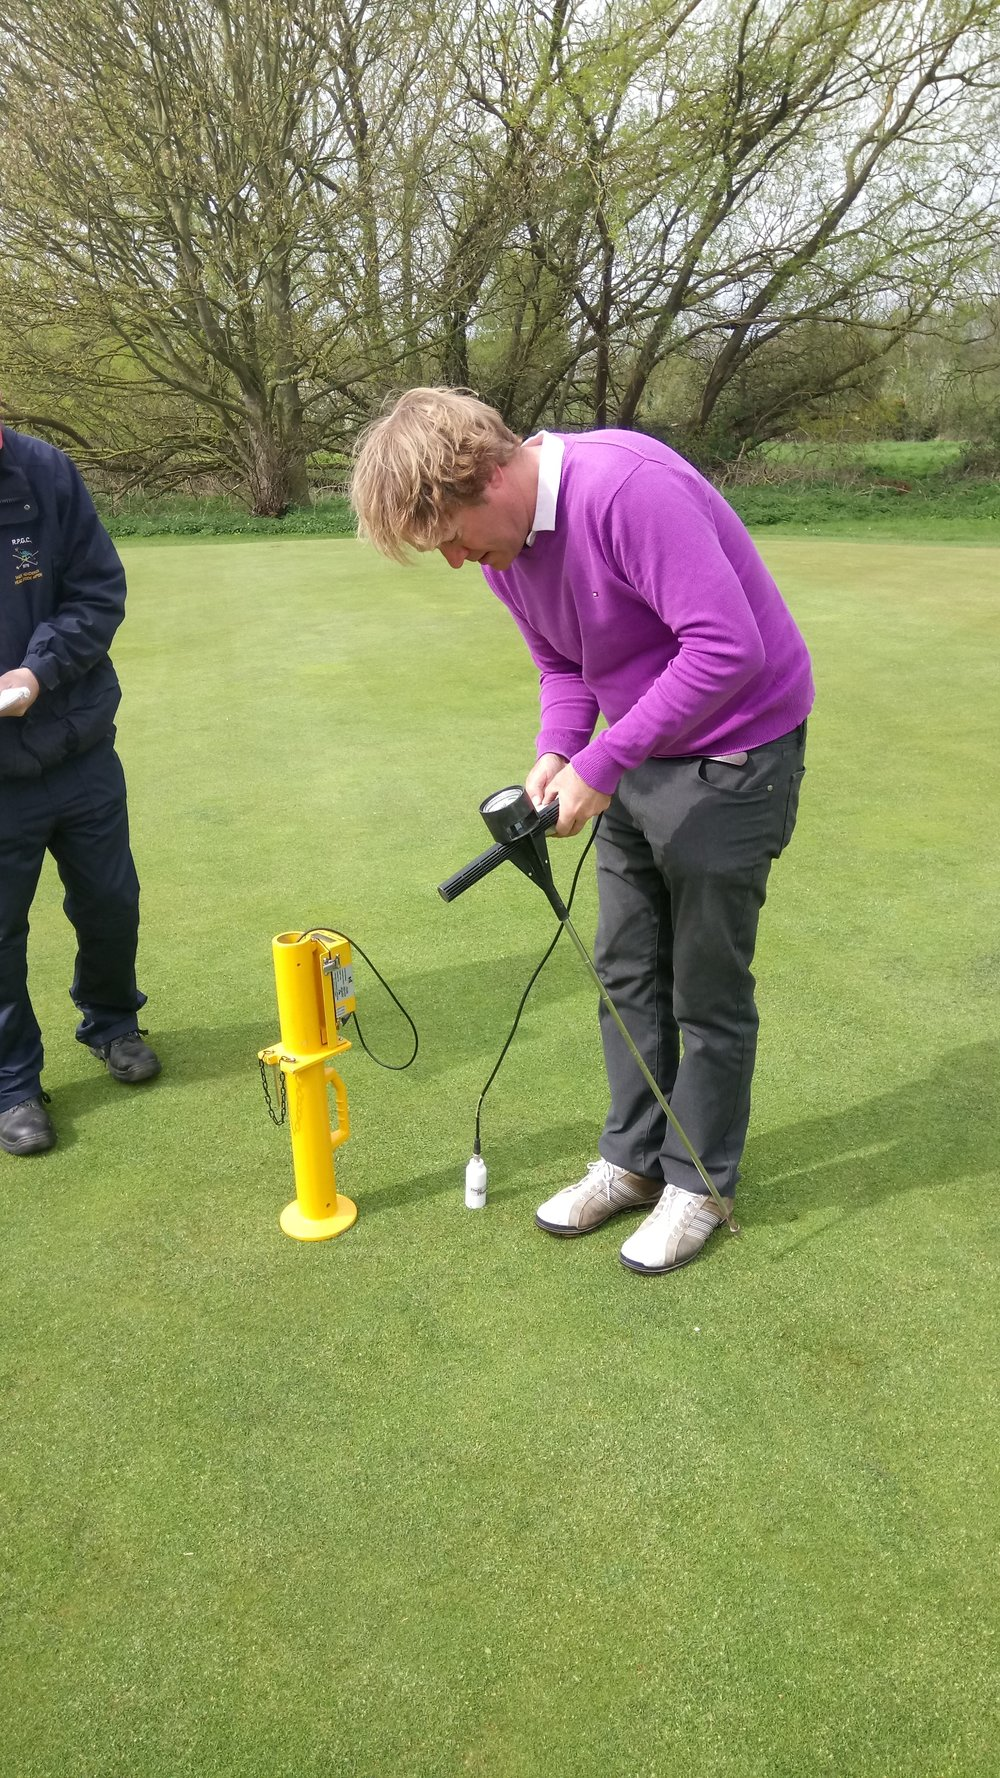 Following his inspection of the Rescue trial, Philip then performed some tests on the 8th green to measure moisture content, firmness of the green, and a pressure test. The results from these will help determine the programme of work for the coming seasons.